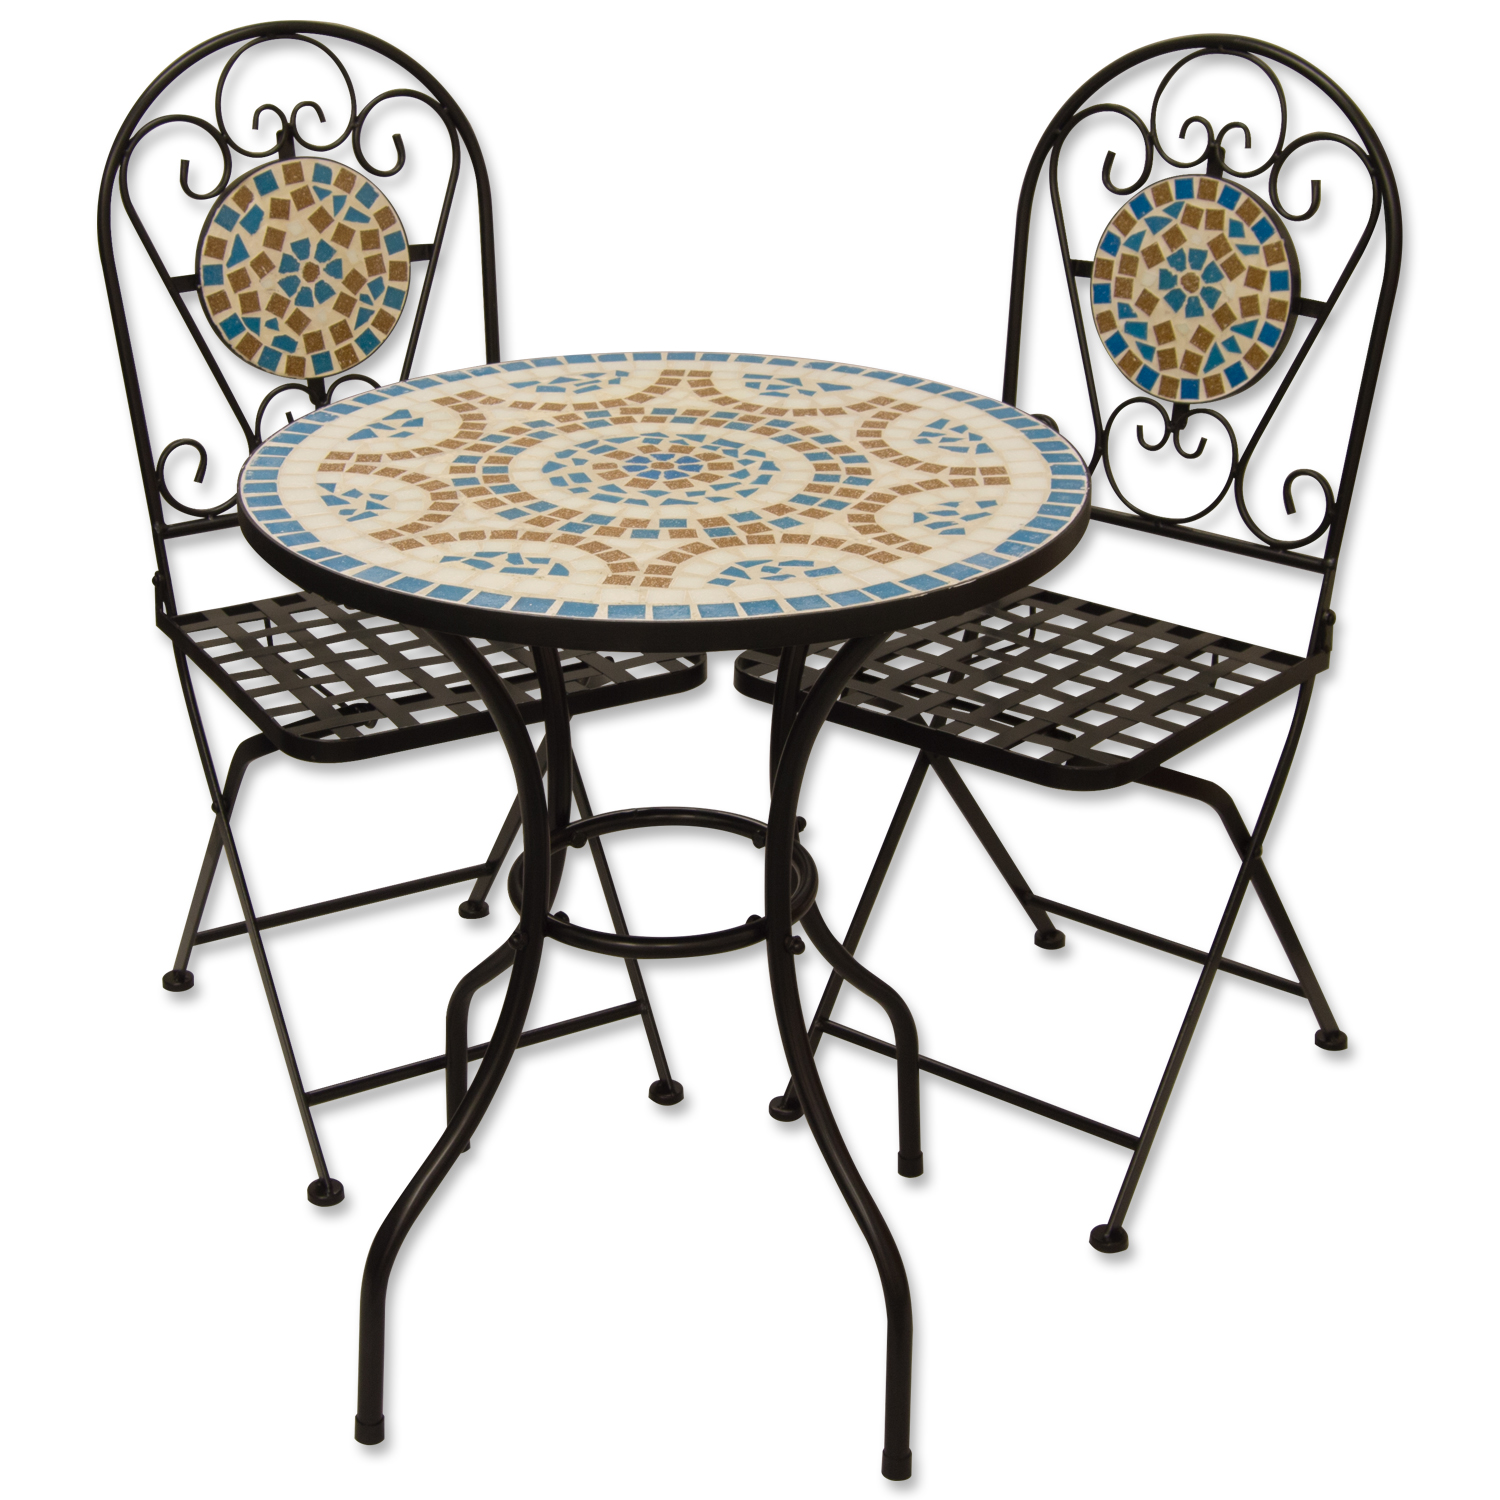 blue metal folding chairs evenflo high chair mosaic outdoor garden table and set ebay